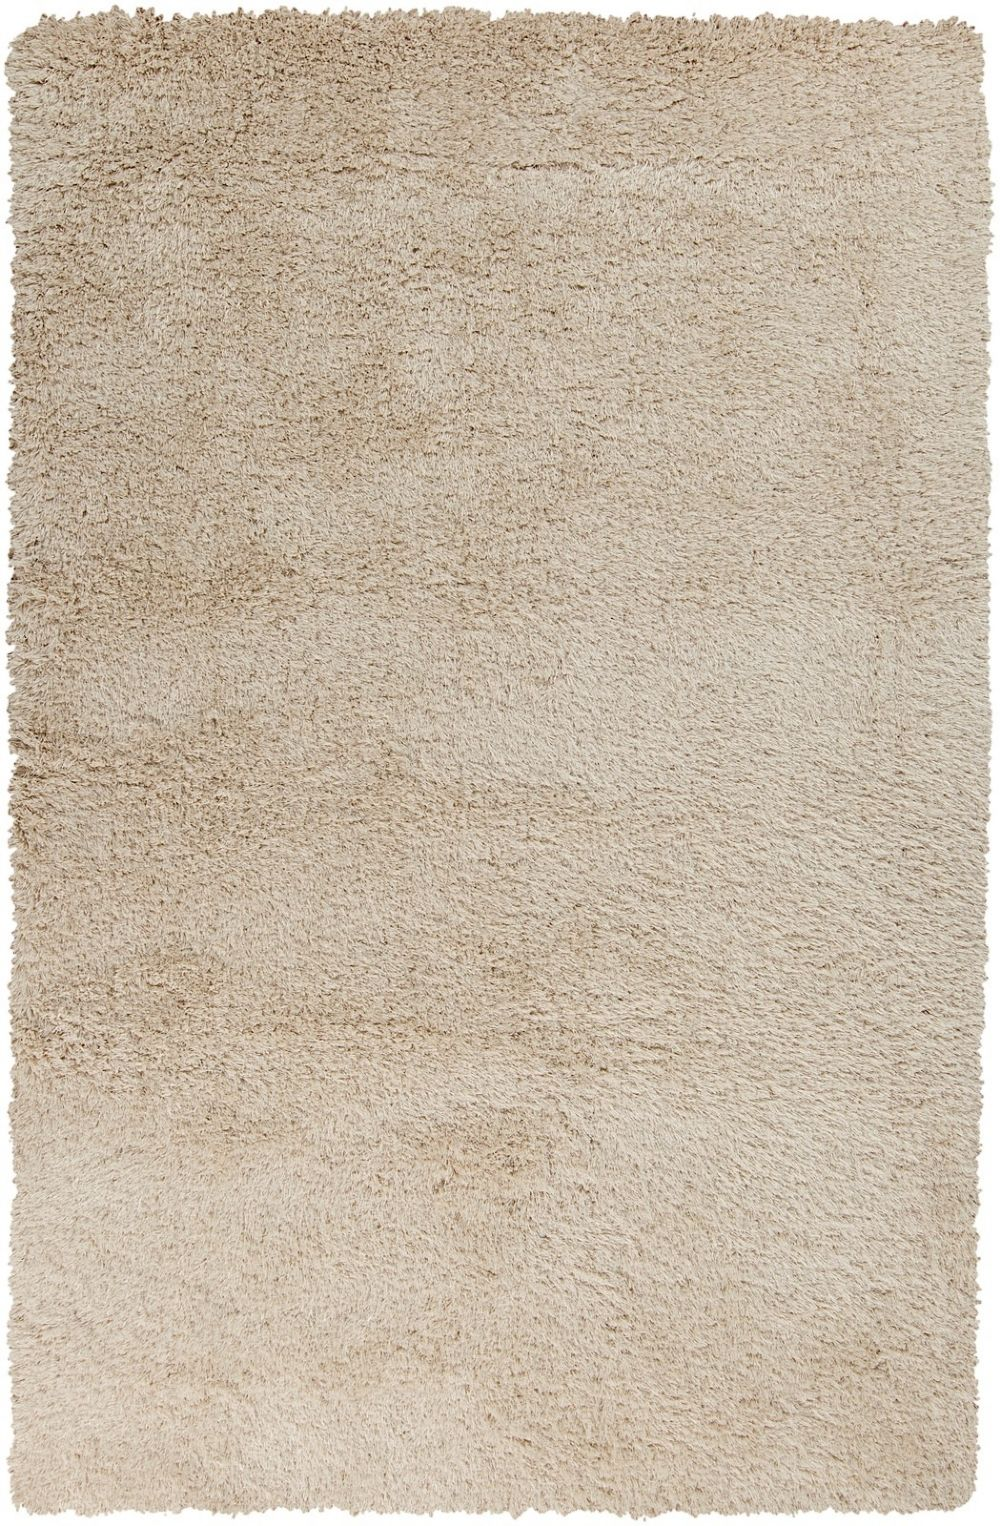 surya portland shag area rug collection